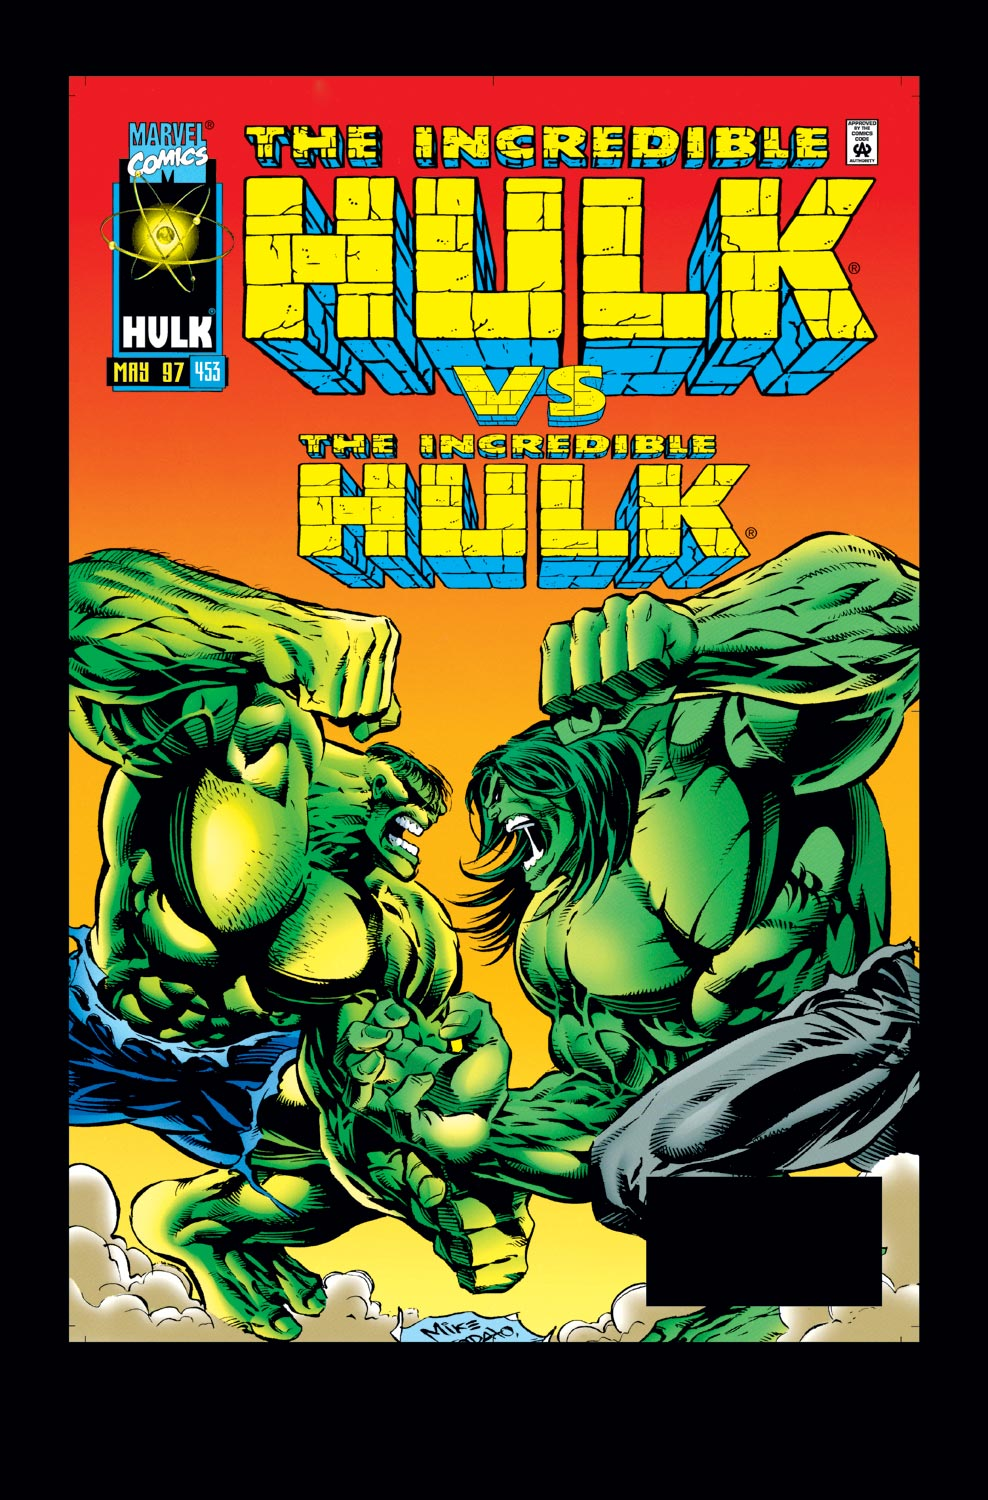 Incredible Hulk (1962) #453